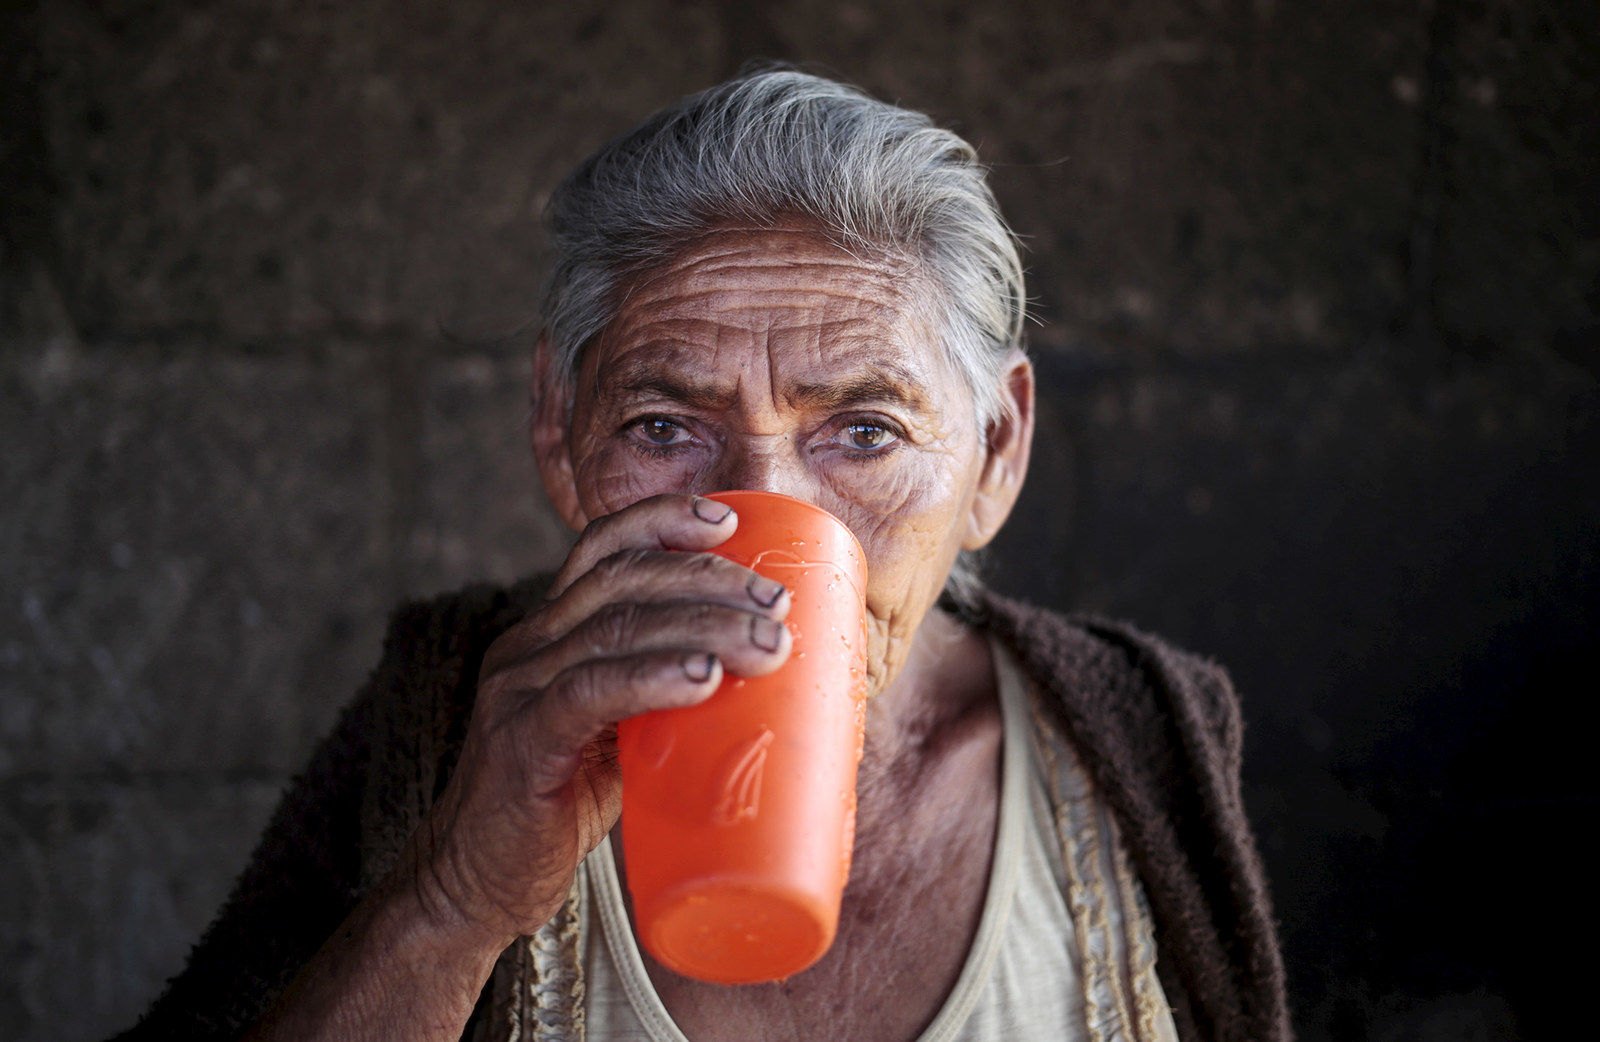 A woman drinks water in El Crucero town, Nicaragua, on Feb. 27, 2016. Some 650 million people, or one in 10 of the world's population, have no access to safe water, putting them at risk of infectious diseases and premature death.